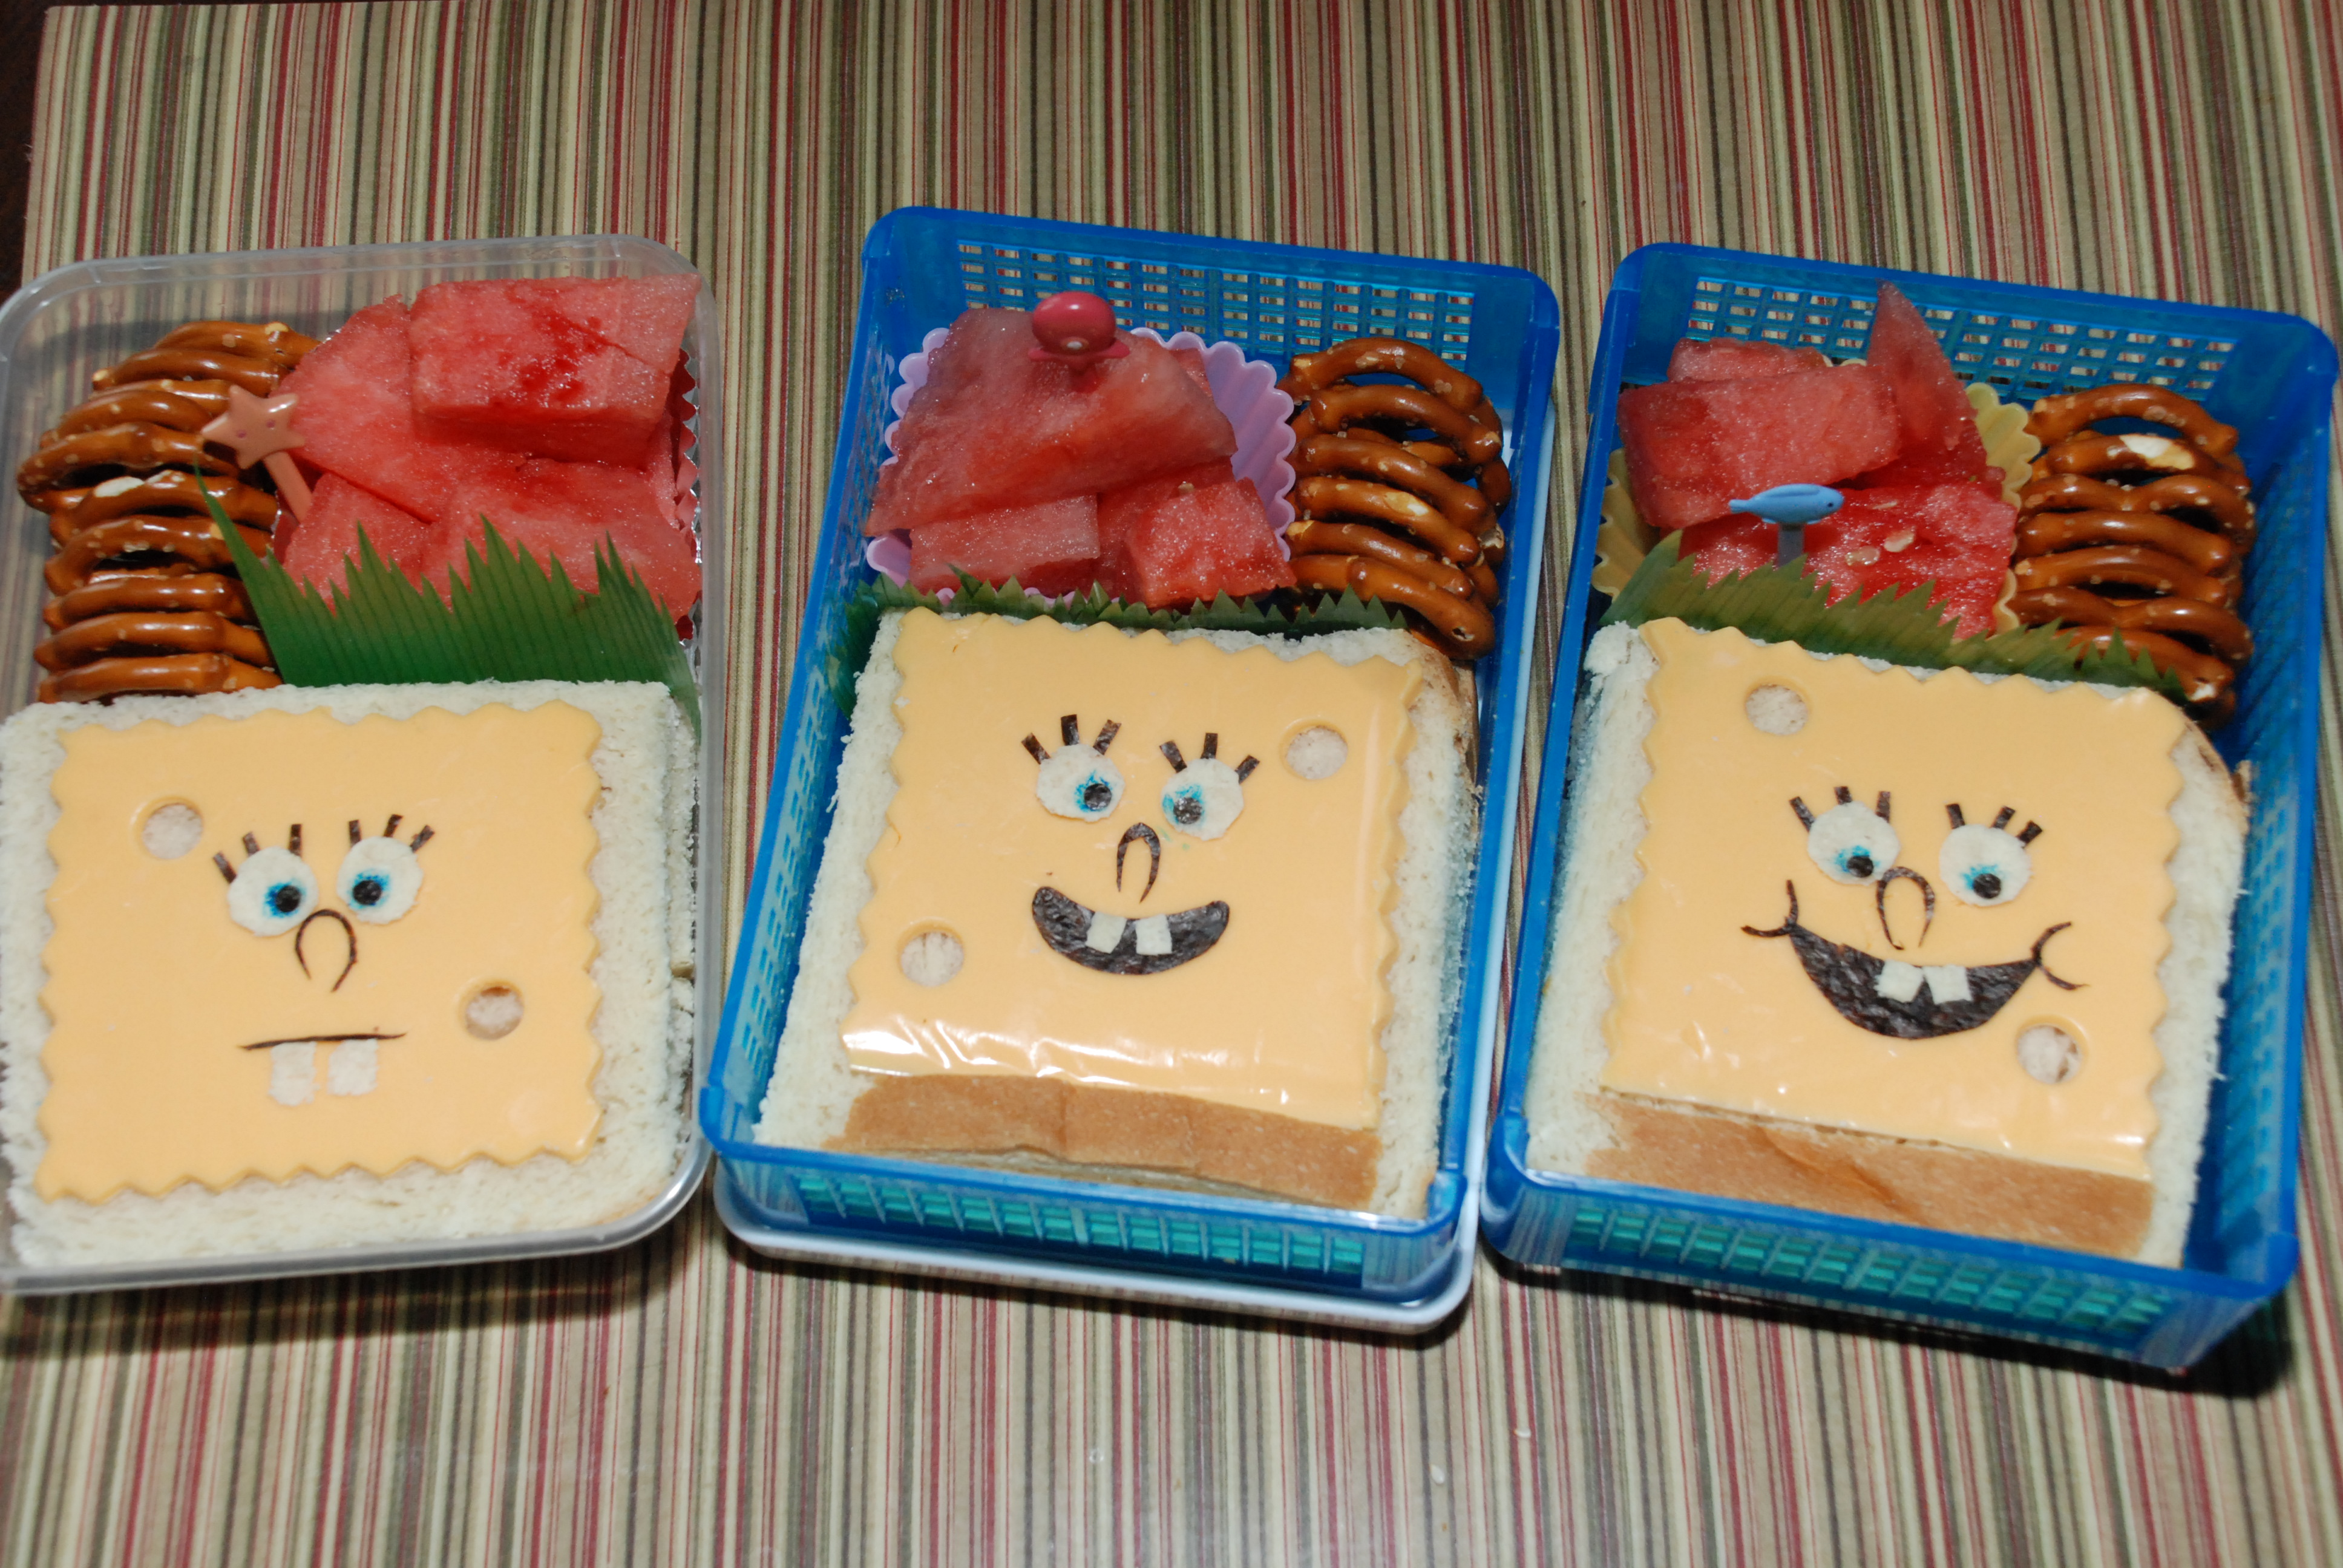 Uncategorized Spongebob Sandwich spongebob all about the kids luckily his cousin likes cheese so i whipped up 3 ham and sandwiches three for 3